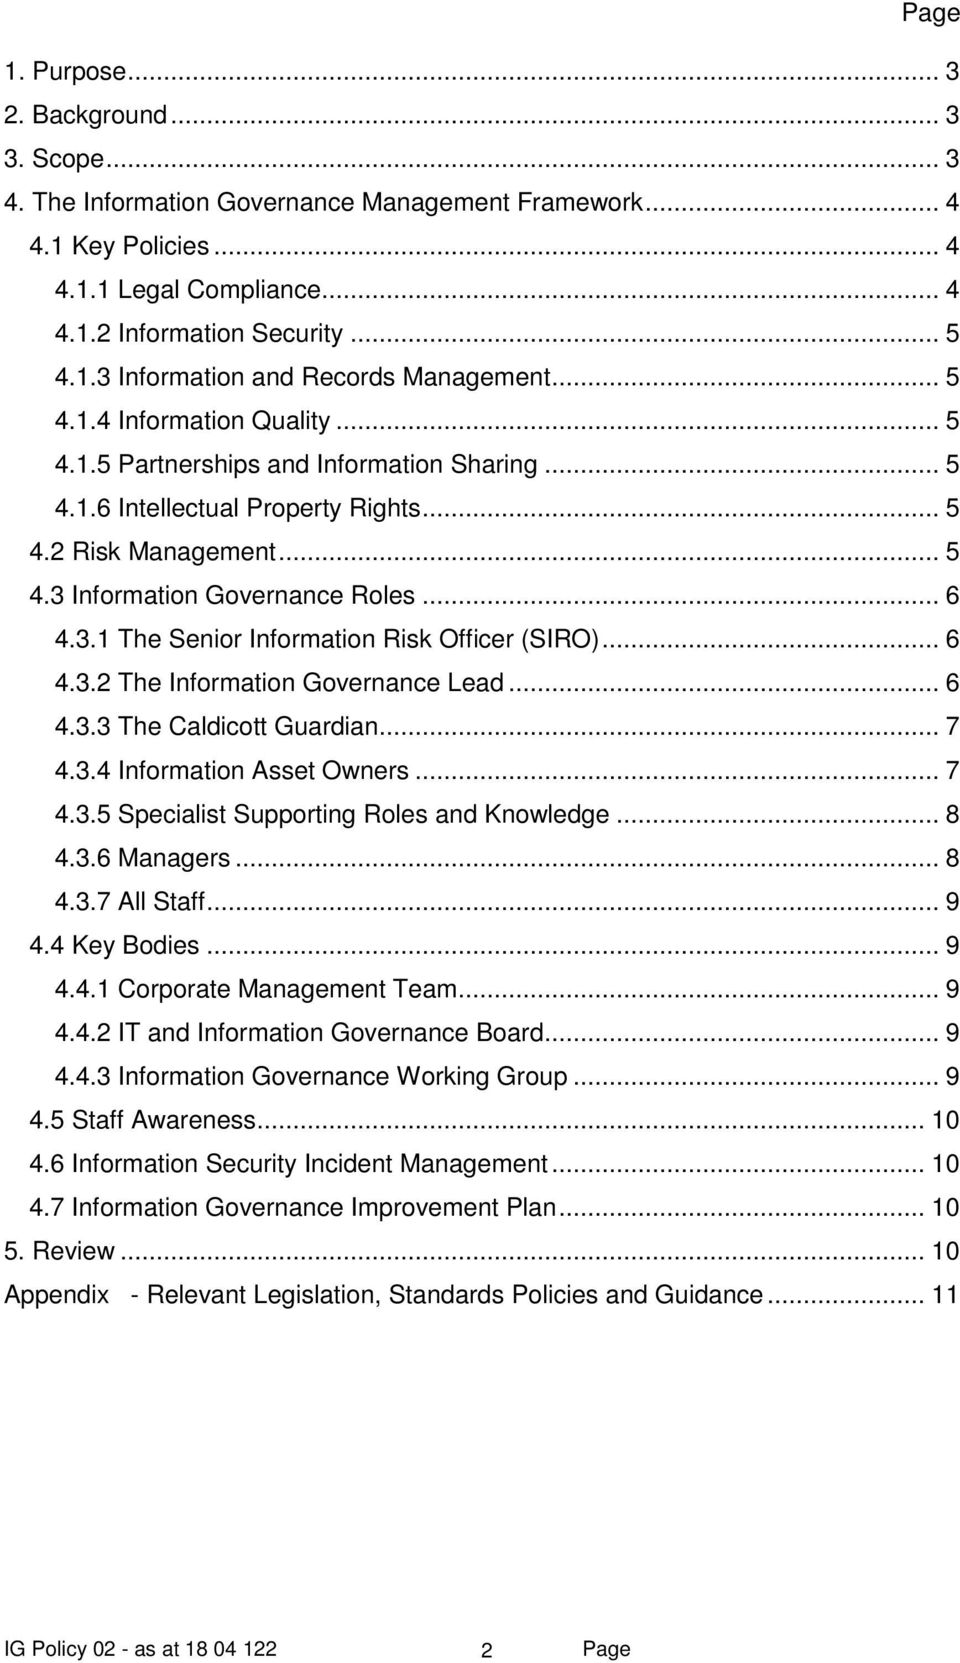 .. 6 4.3.2 The Information Governance Lead... 6 4.3.3 The Caldicott Guardian... 7 4.3.4 Information Asset Owners... 7 4.3.5 Specialist Supporting Roles and Knowledge... 8 4.3.6 Managers... 8 4.3.7 All Staff.